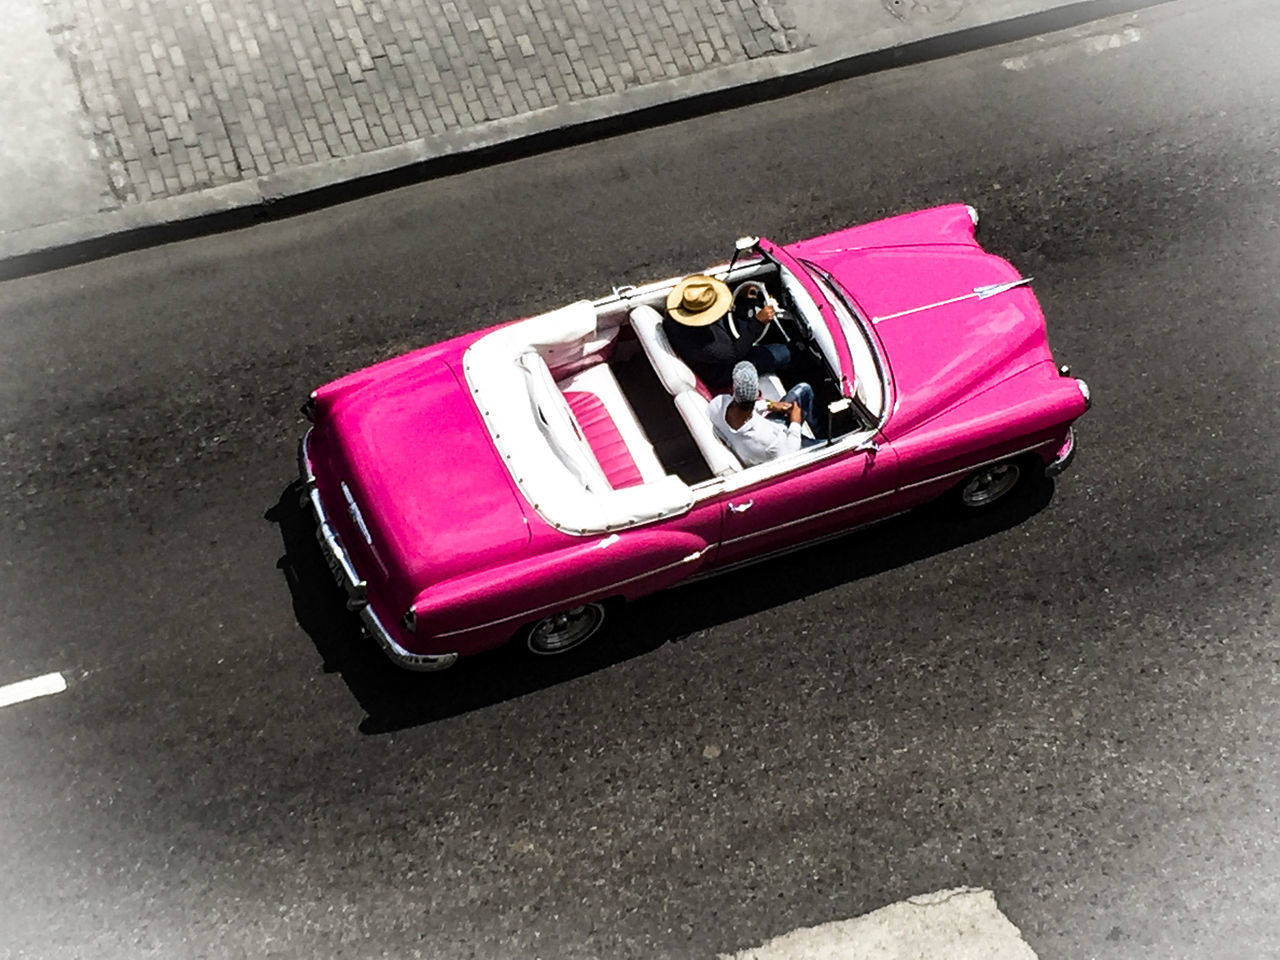 transportation, high angle view, land vehicle, car, mode of transport, pink color, day, outdoors, road, no people, close-up